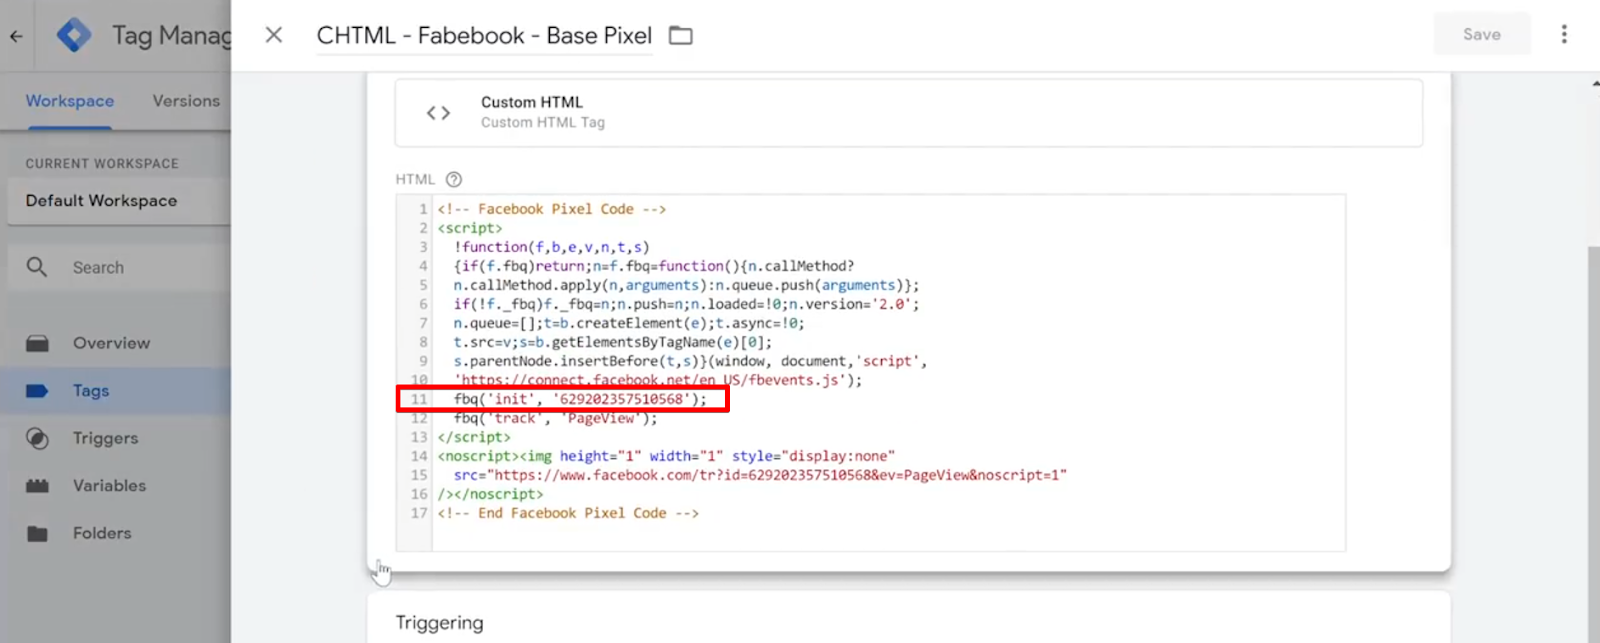 Code line 11 in the HTML of Facebook Base Pixel Tag begins with fbq('init', which initiates the Facebook Pixel